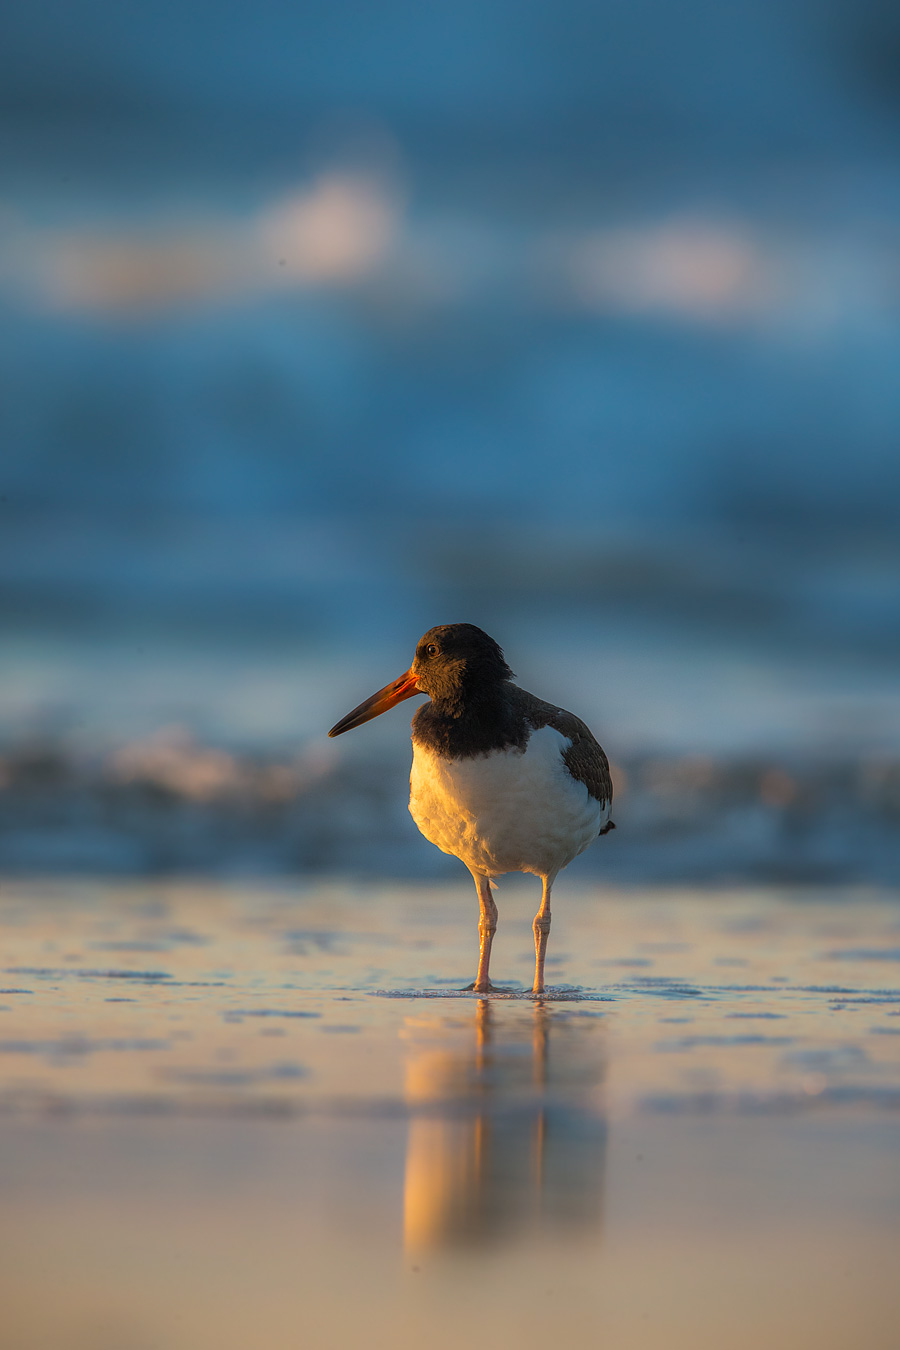 As the nesting season winds down, you'll find Pretty Young Things flocking to the beach to learn grown up skills. You can identify this juvenile Oystercatchers by the black coloring on her beak. It will go full orange when she's all grown up.